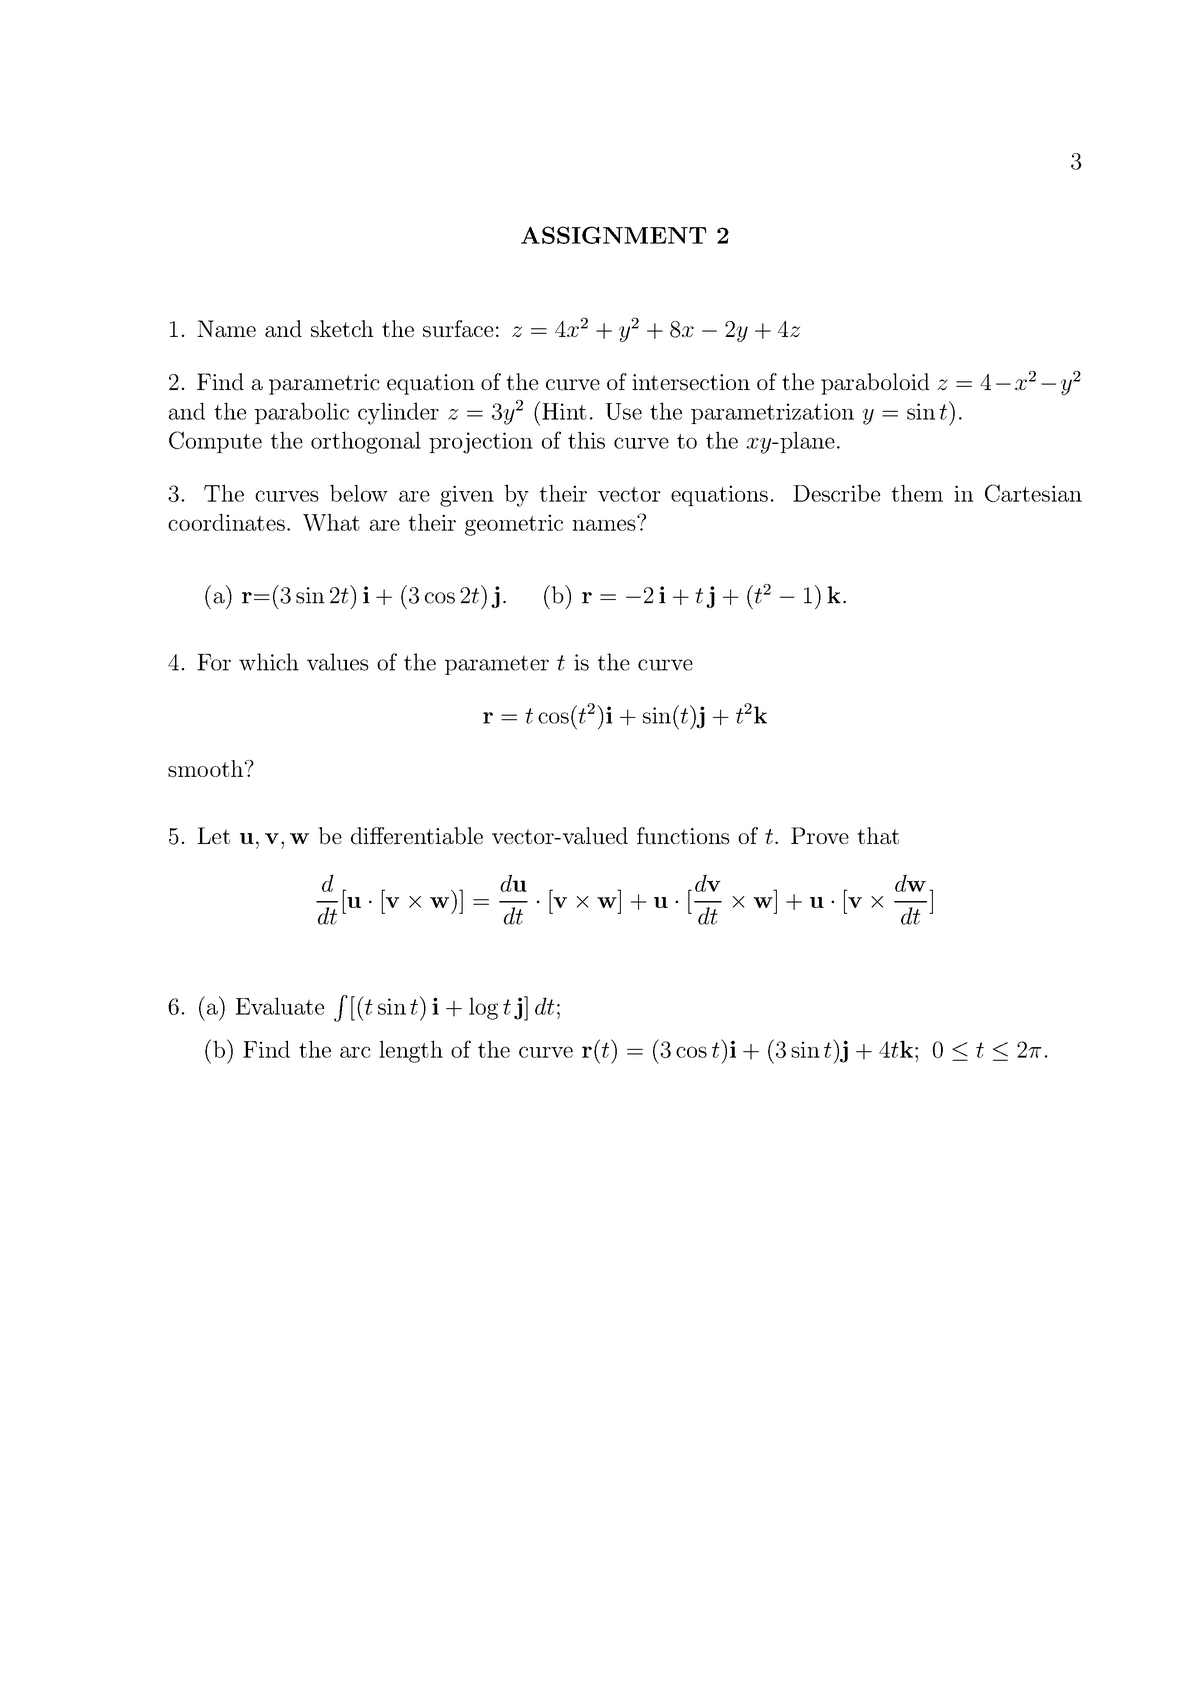 PMTH212 2012 Assignment 2 - PMTH212: Multivariable Calculus - StuDocu